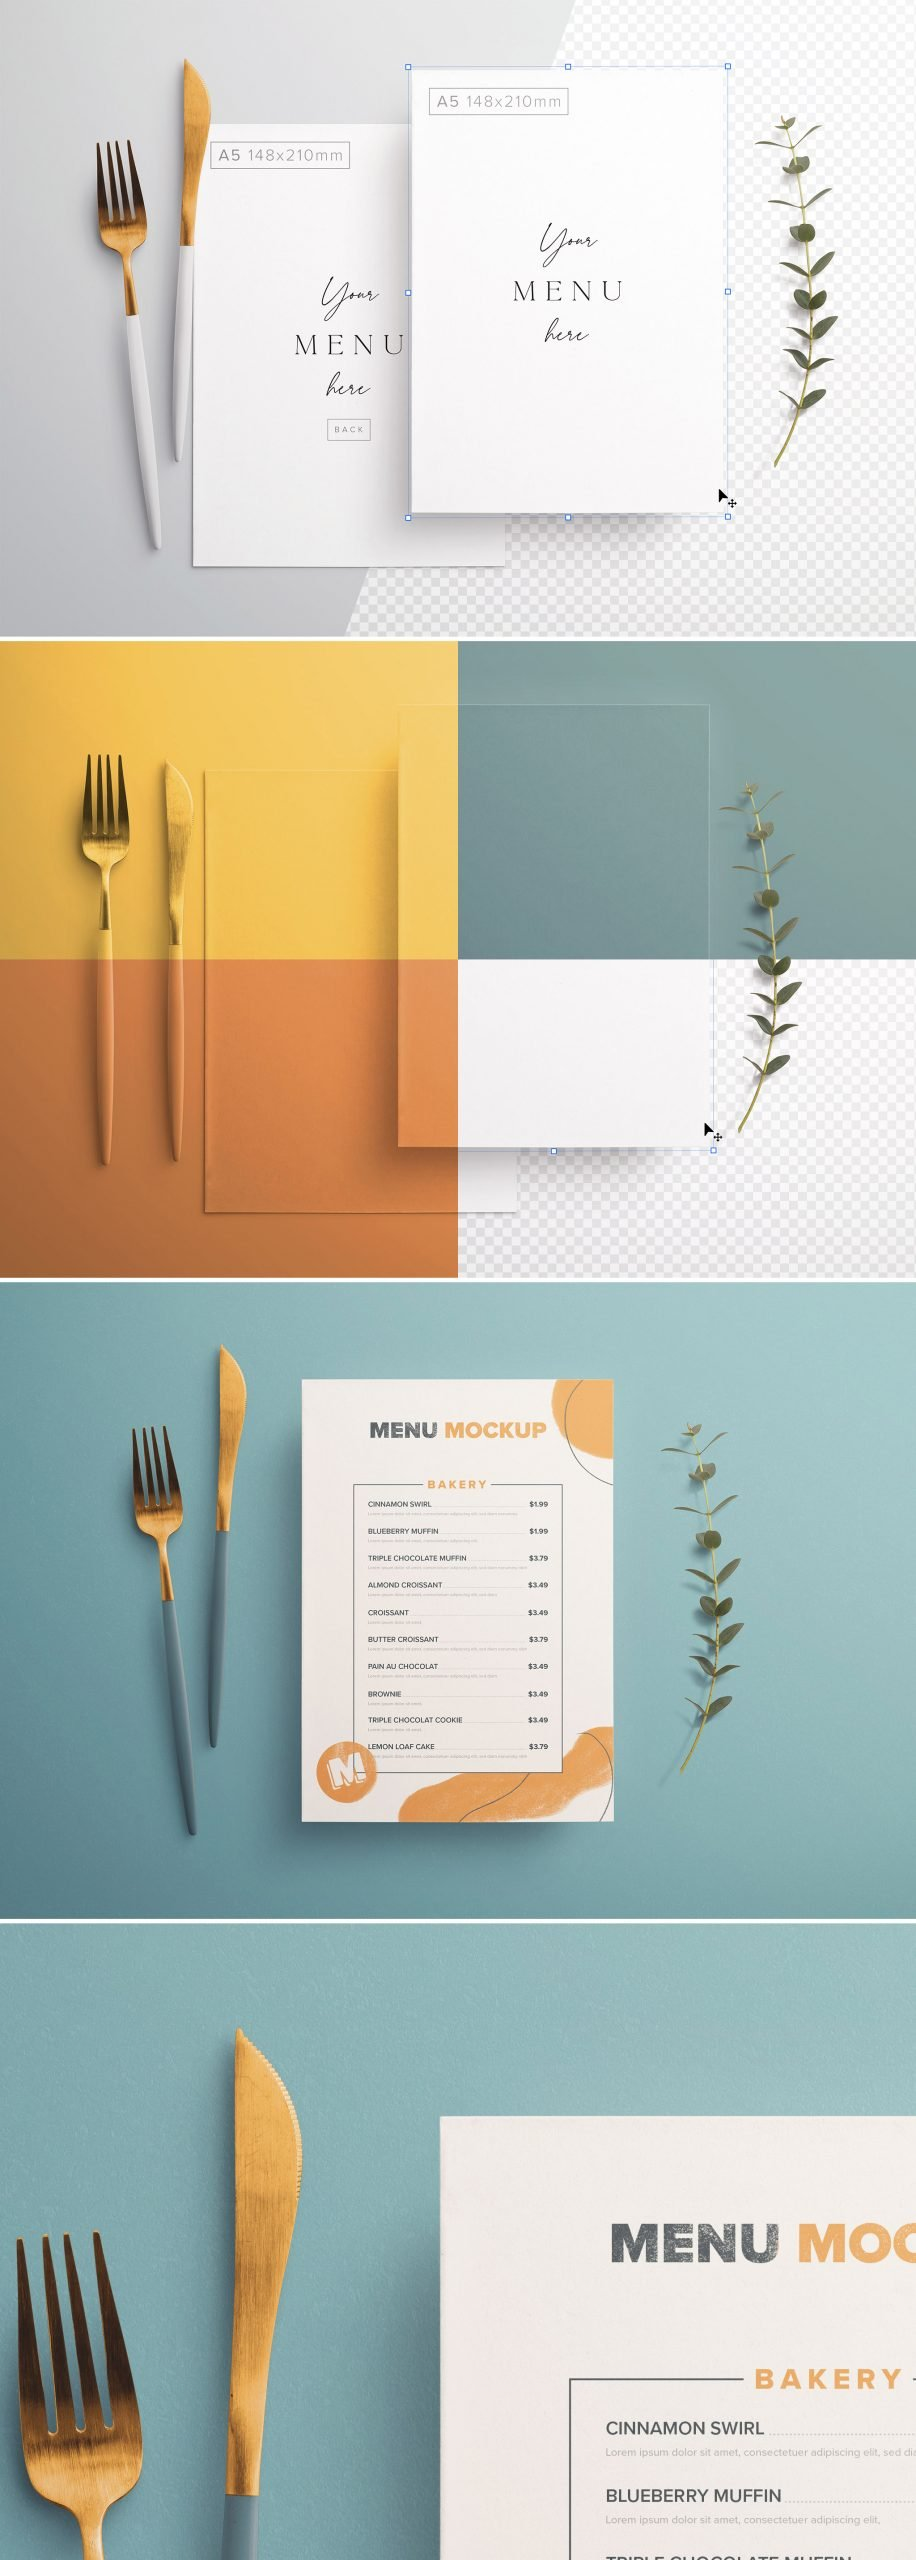 Table A5 Menu with Cutleries And Eucalyptus Preview scaled